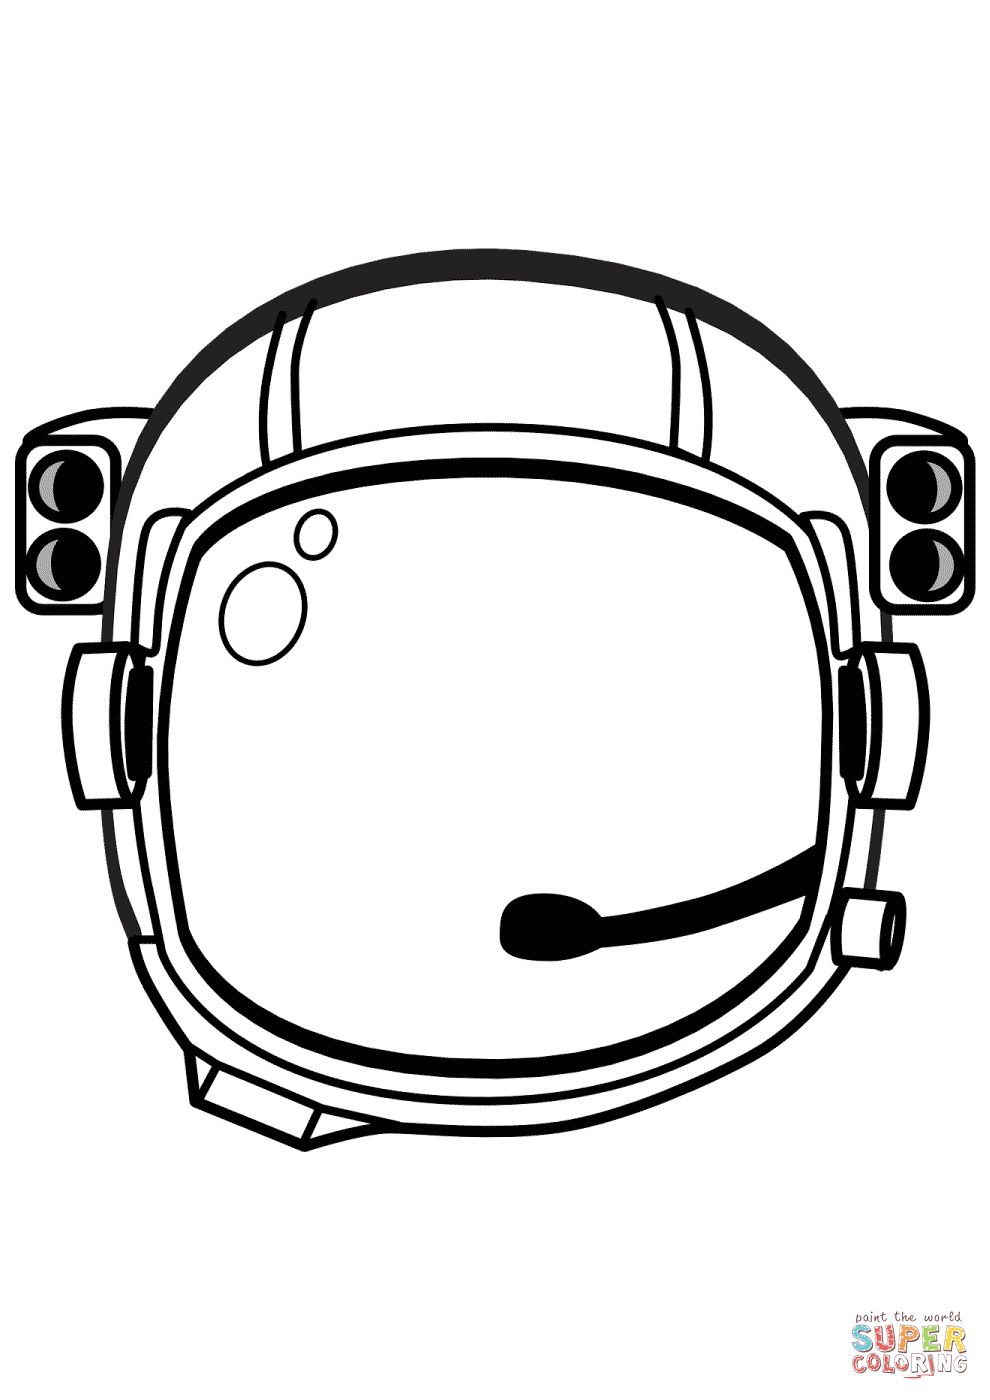 990x1400 Astronaut Helmet Coloring Page Free Printable Coloring Pages